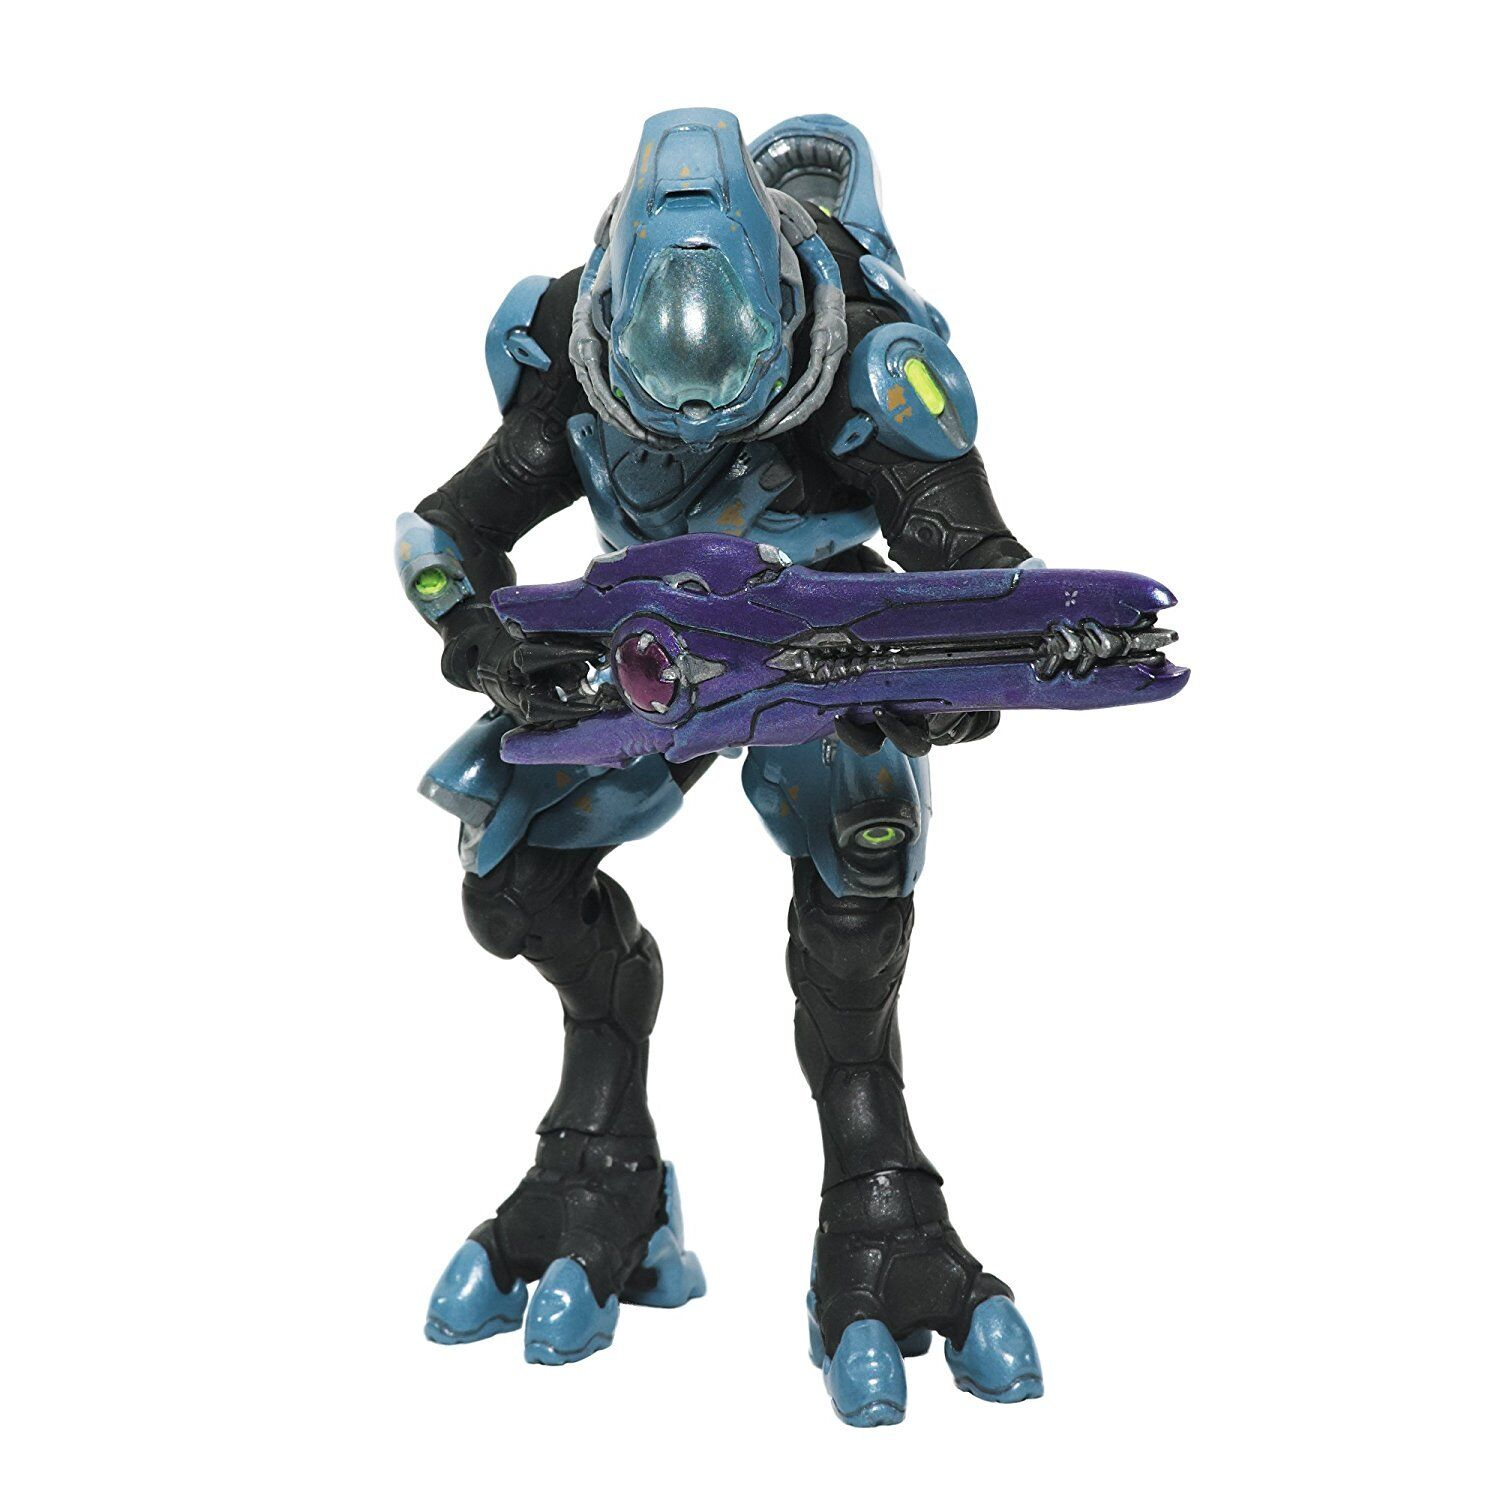 McFarlane Toys Halo 4 Series 2- Elite Ranger with Beam Rifle